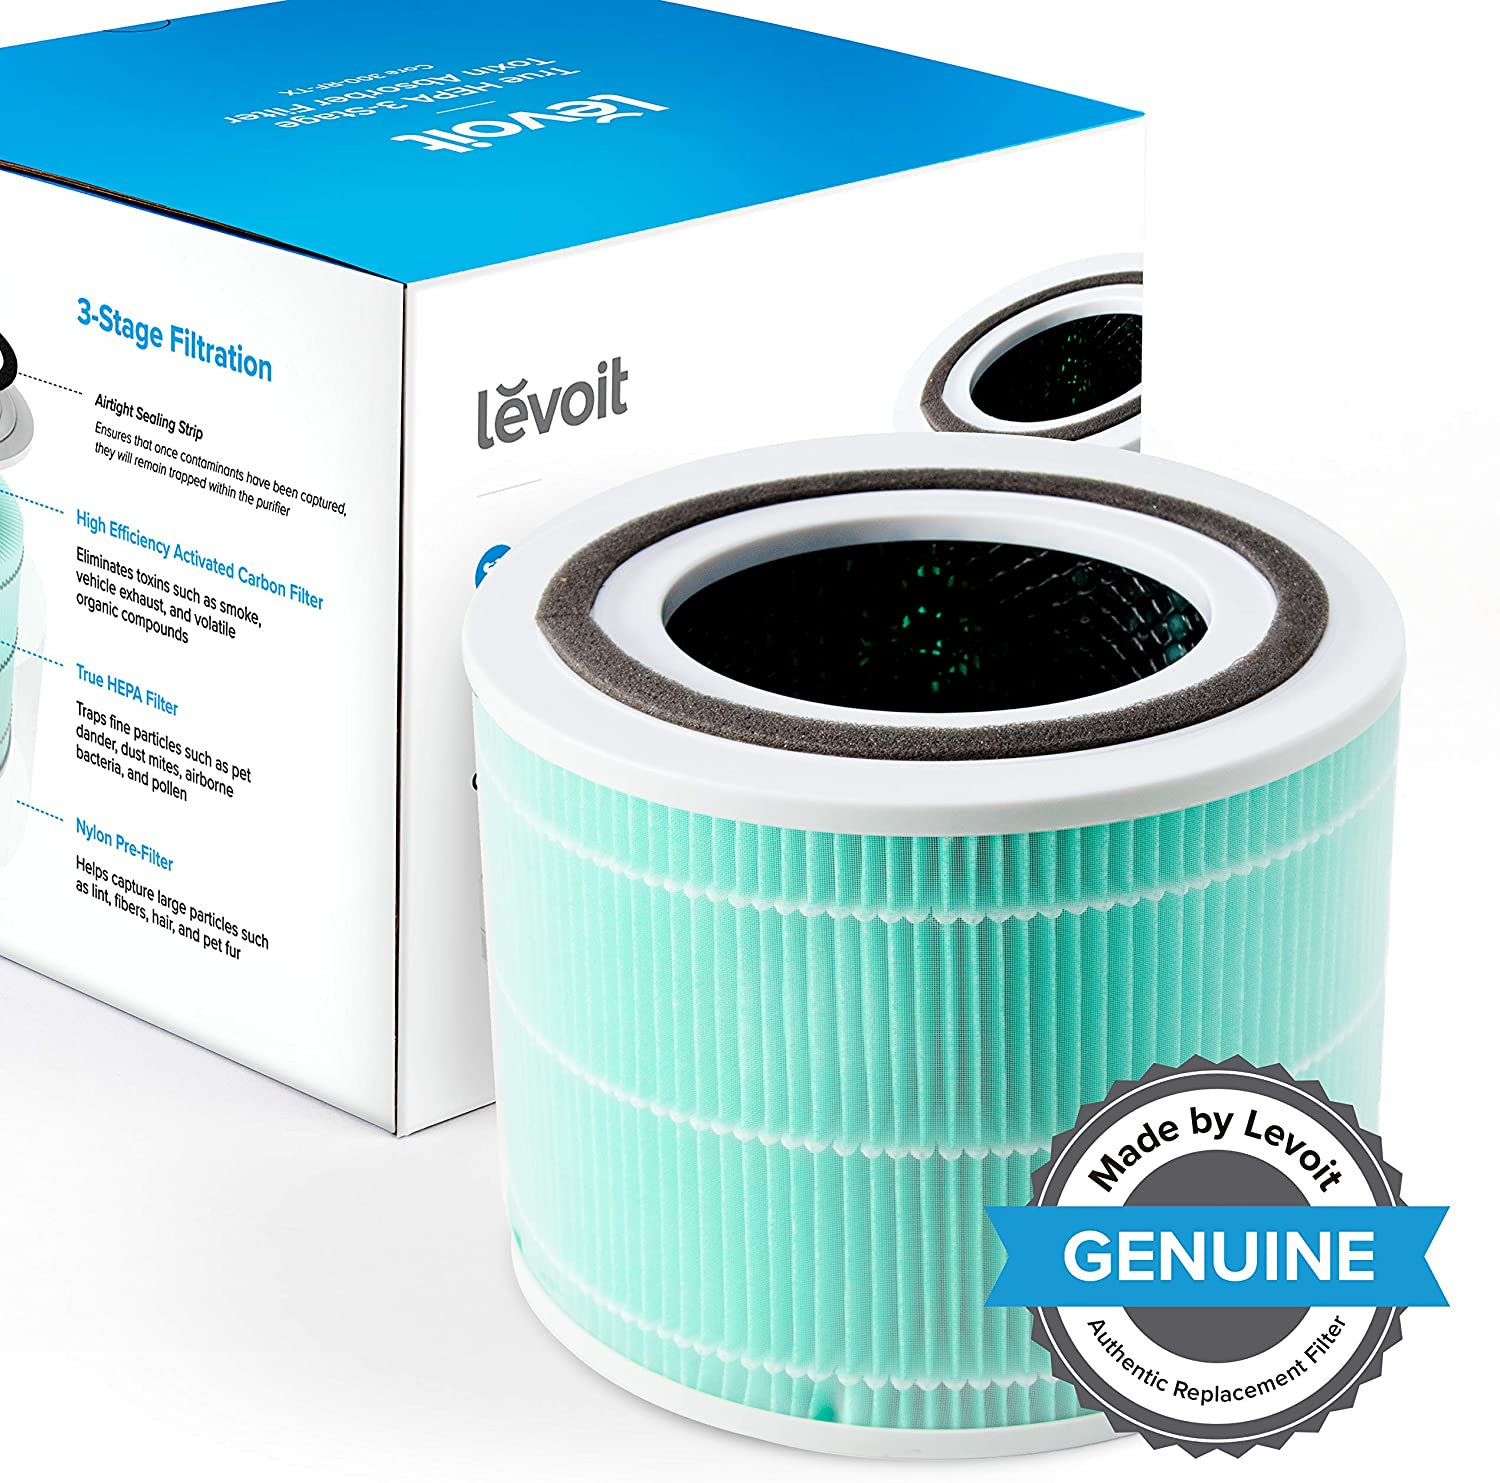 LEVOIT Core 300 Air Purifier Replacement Filter, 3-in-1 Pre-Filter, True HEPA Filter, High-Efficiency Activated Carbon Filter, Core 300-RF (Toxin Absorber)